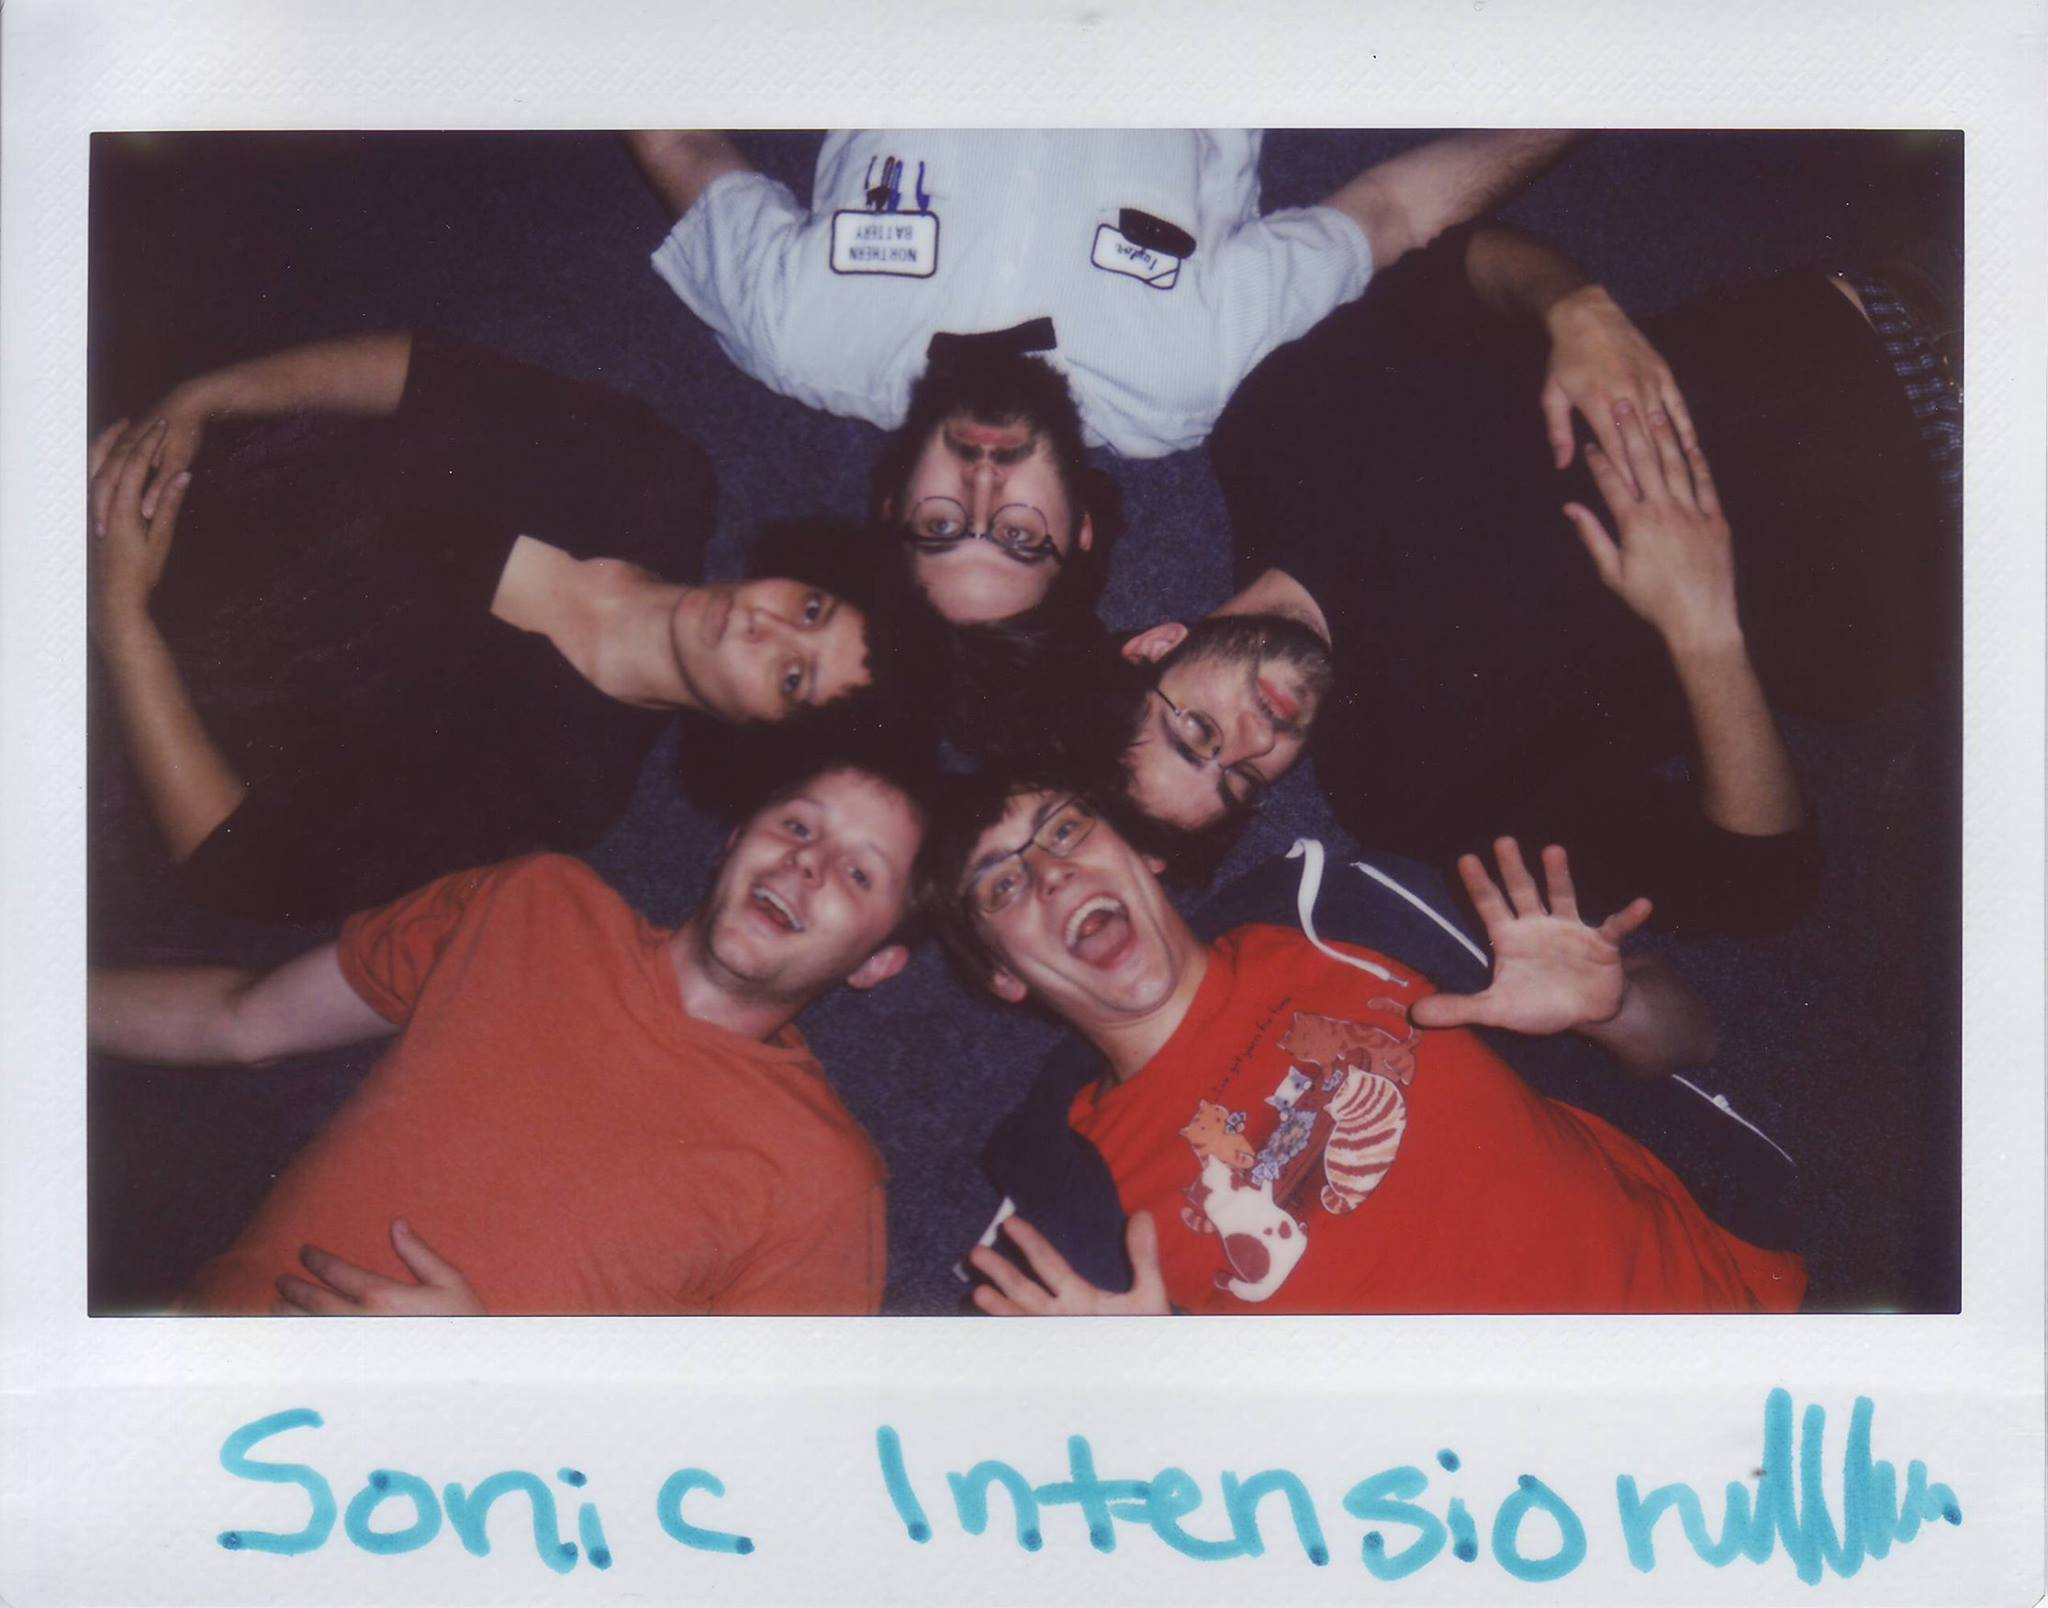 Sonic Intension